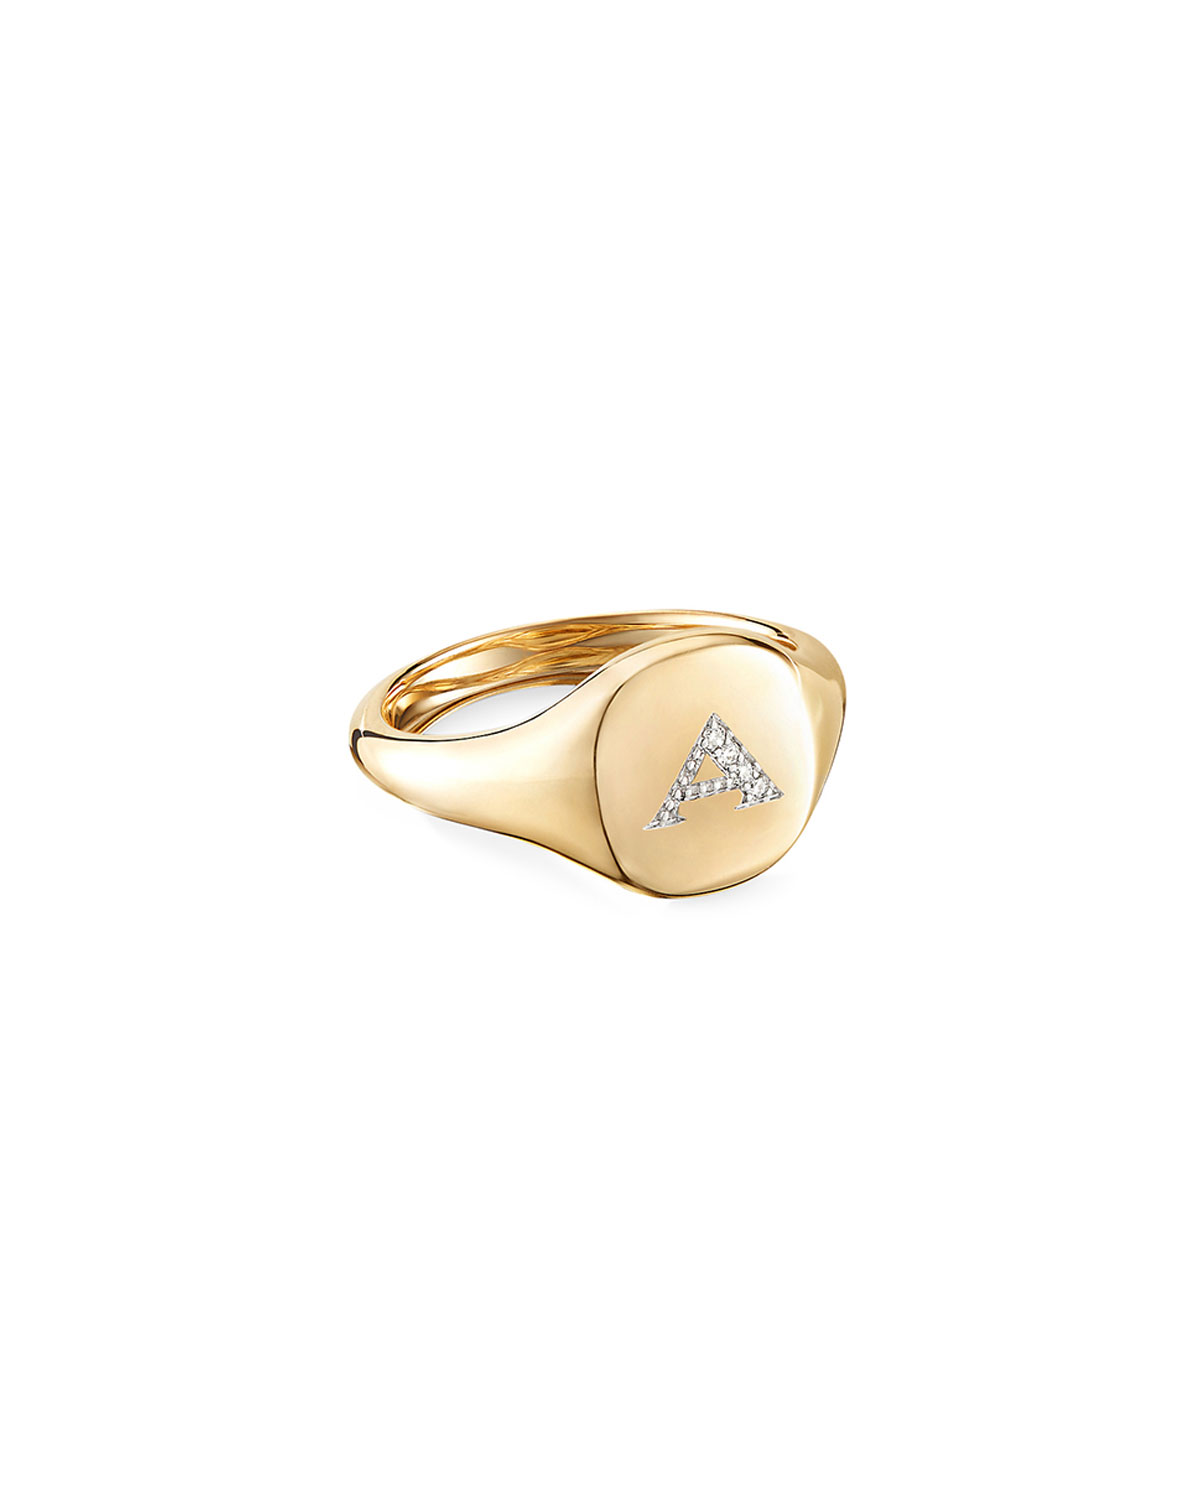 David Yurman Mini DY Initial A Pinky Ring in 18K Yellow Gold with Diamonds, Size 4.5